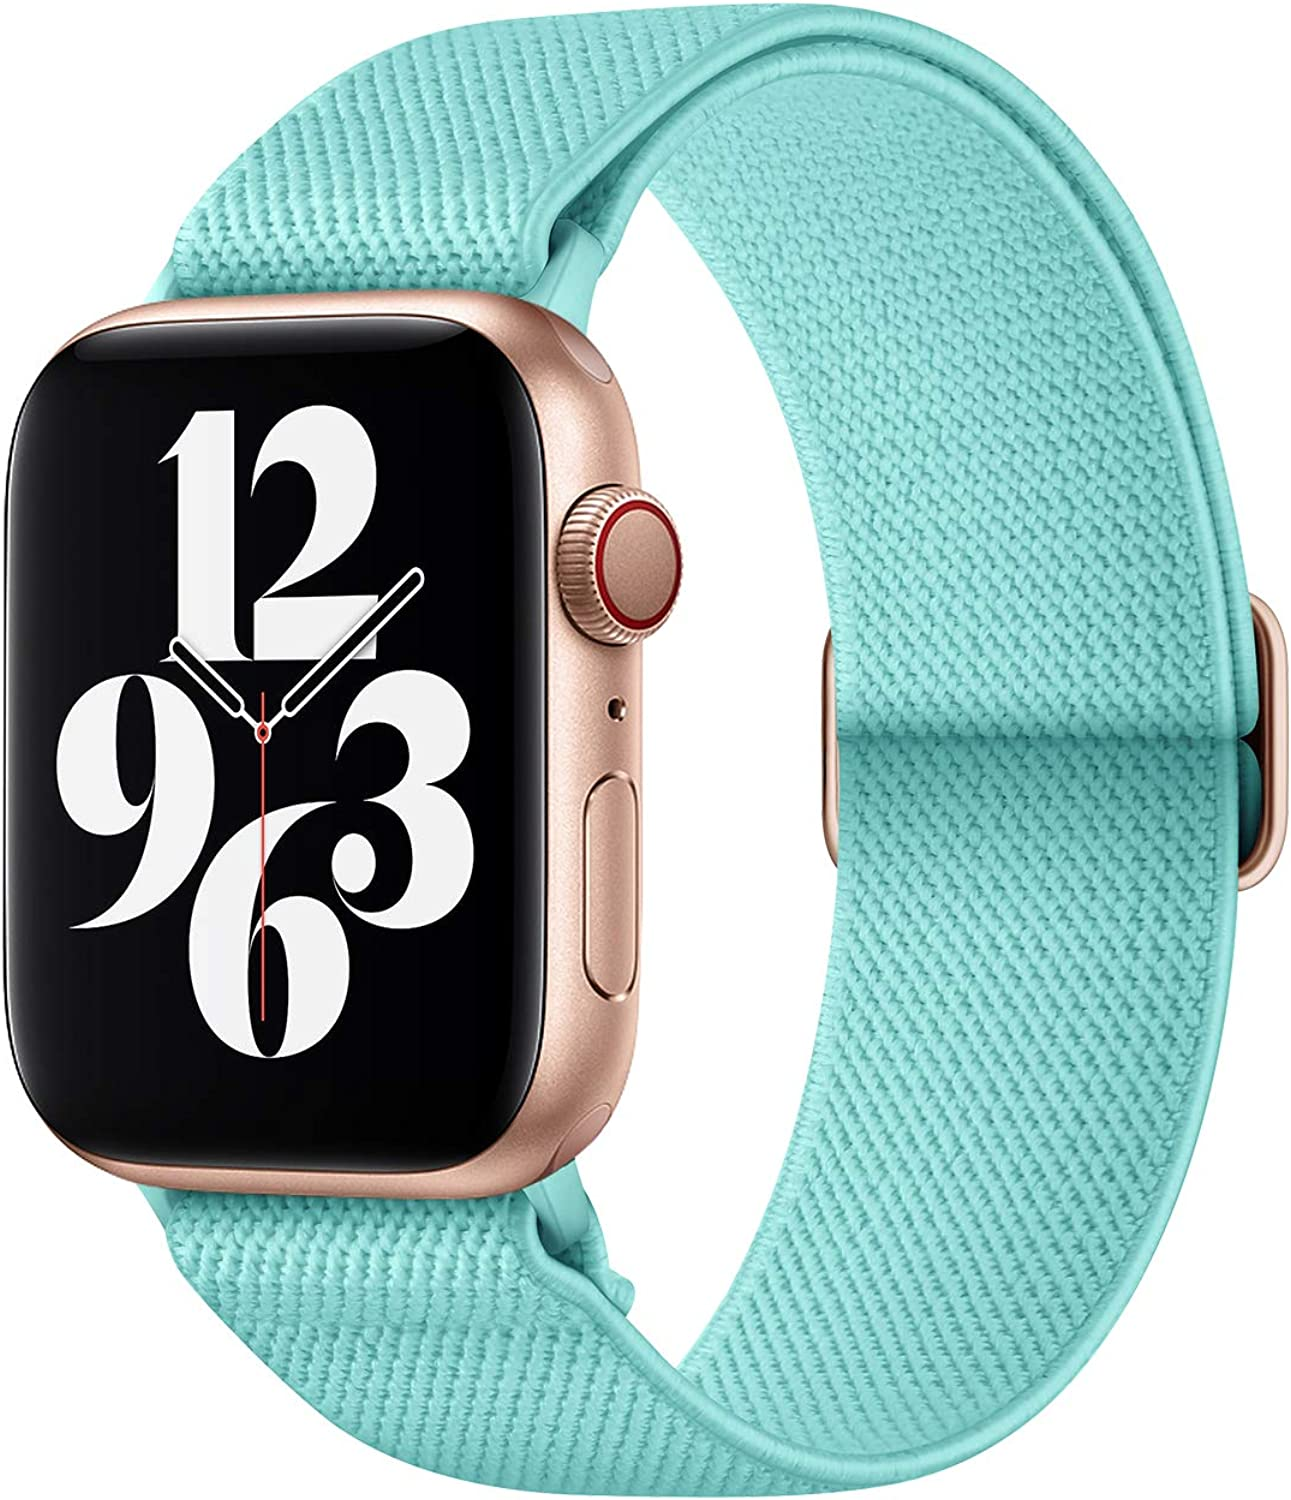 AMANECER Stretchy Nylon Watch Bands Compatible with Apple Watch Series 6/5/4/3/2/1 SE, Adjustable Braided Elastic Sport Loop Bands for iWatch Women Men